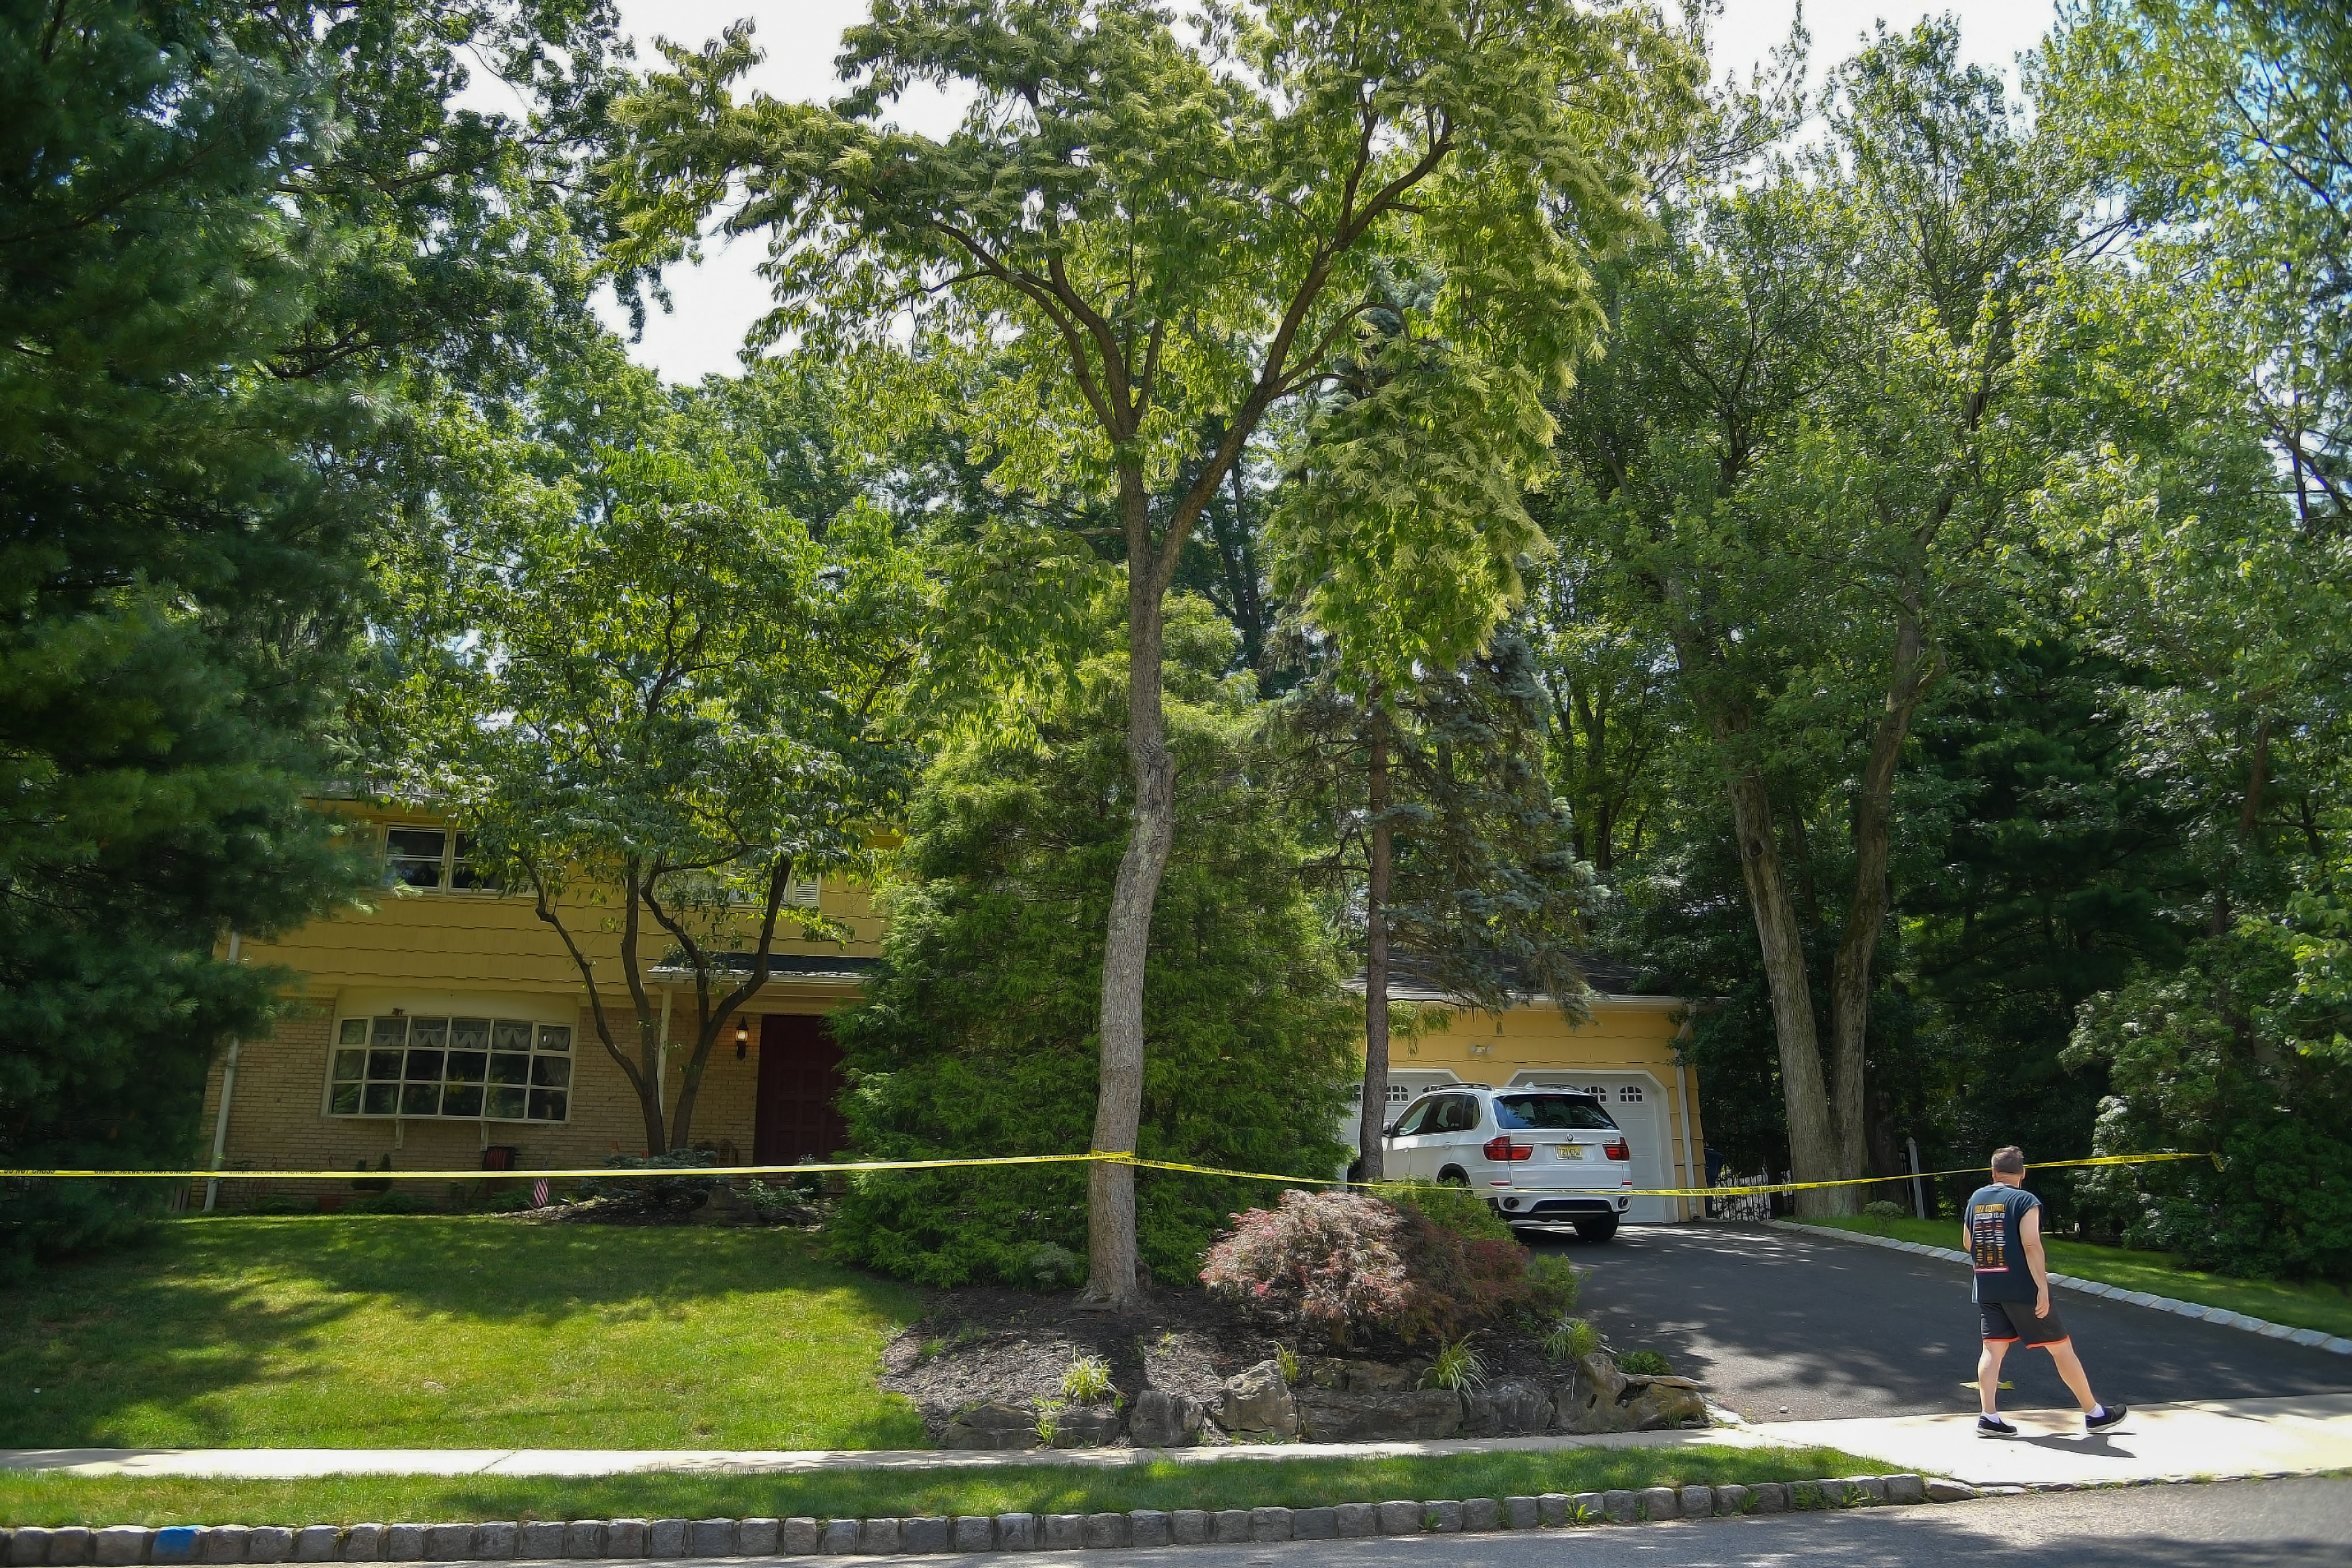 A view of the home of U.S. District Judge Esther Salas. on July 20, 2020 in North Brunswick, New Jersey. Salas' son, Daniel Anderl, was shot and killed and her husband, defense attorney Mark Anderl, was injured when a man dressed as a delivery person came to their front door and opened fire. (Photo by Michael Loccisano/Getty Images)